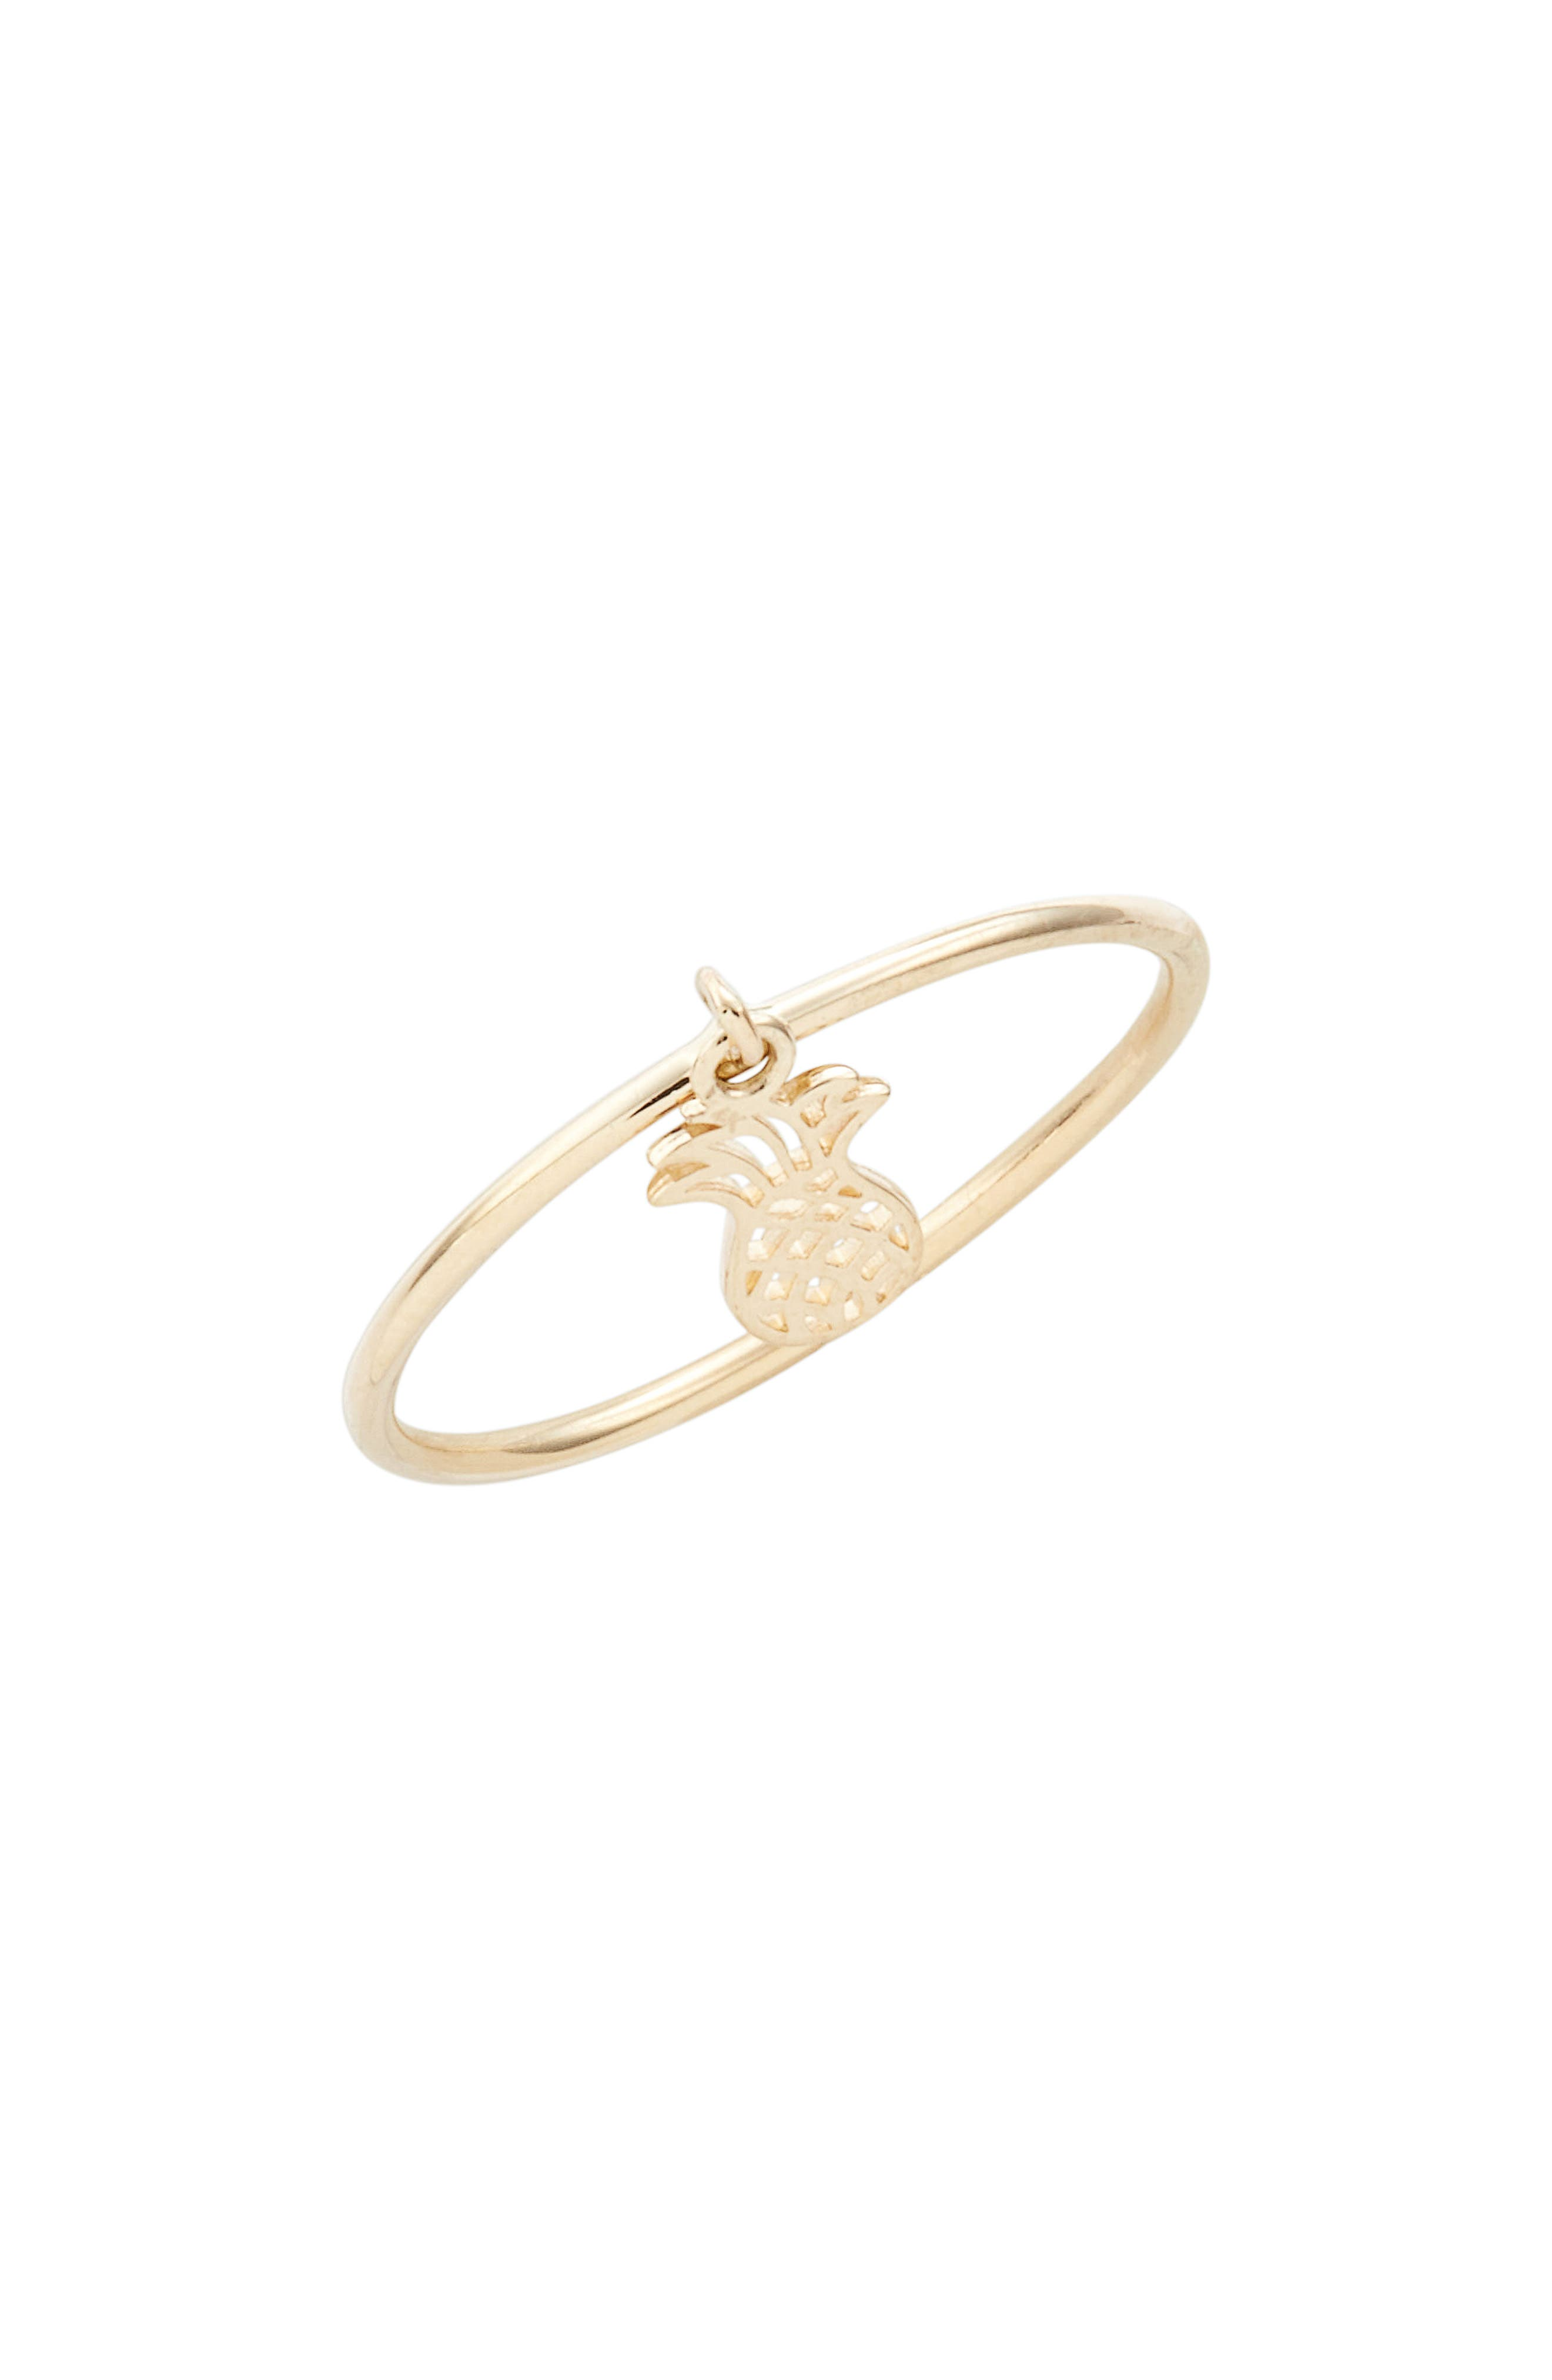 POPPY FINCH Skinny Dangling Pineapple Charm Ring